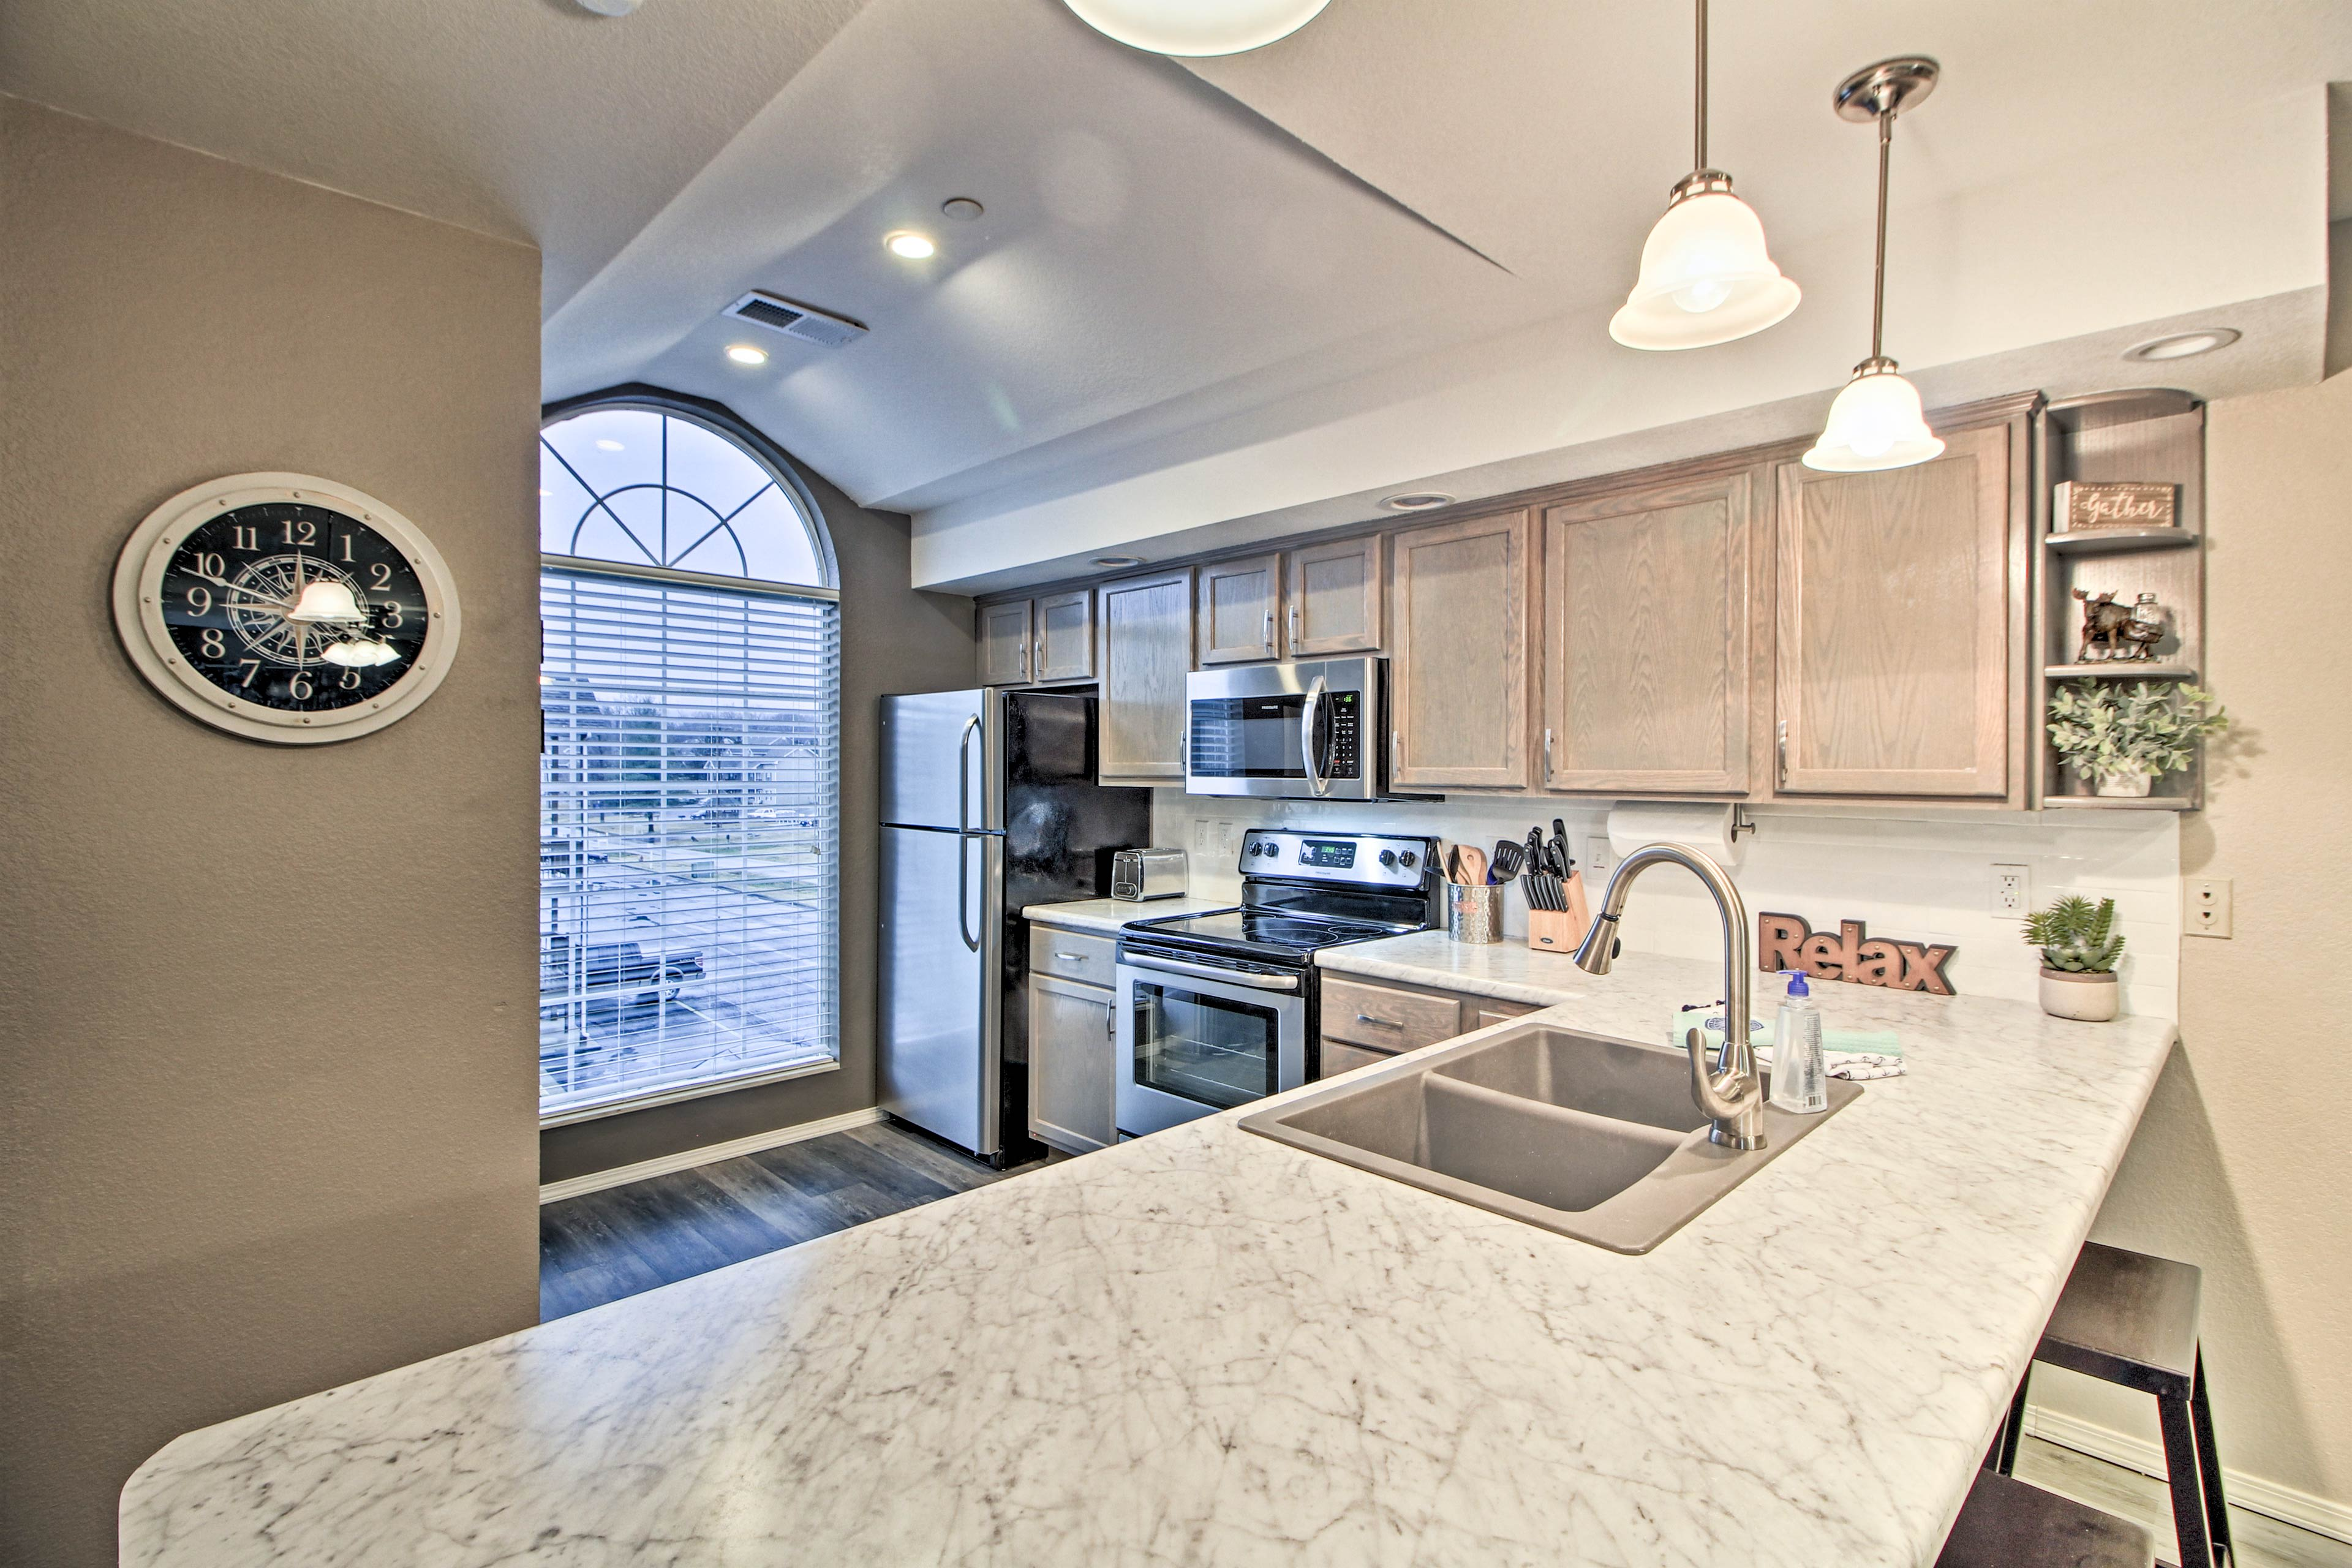 Meal prep will be a breeze on the new granite countertops.